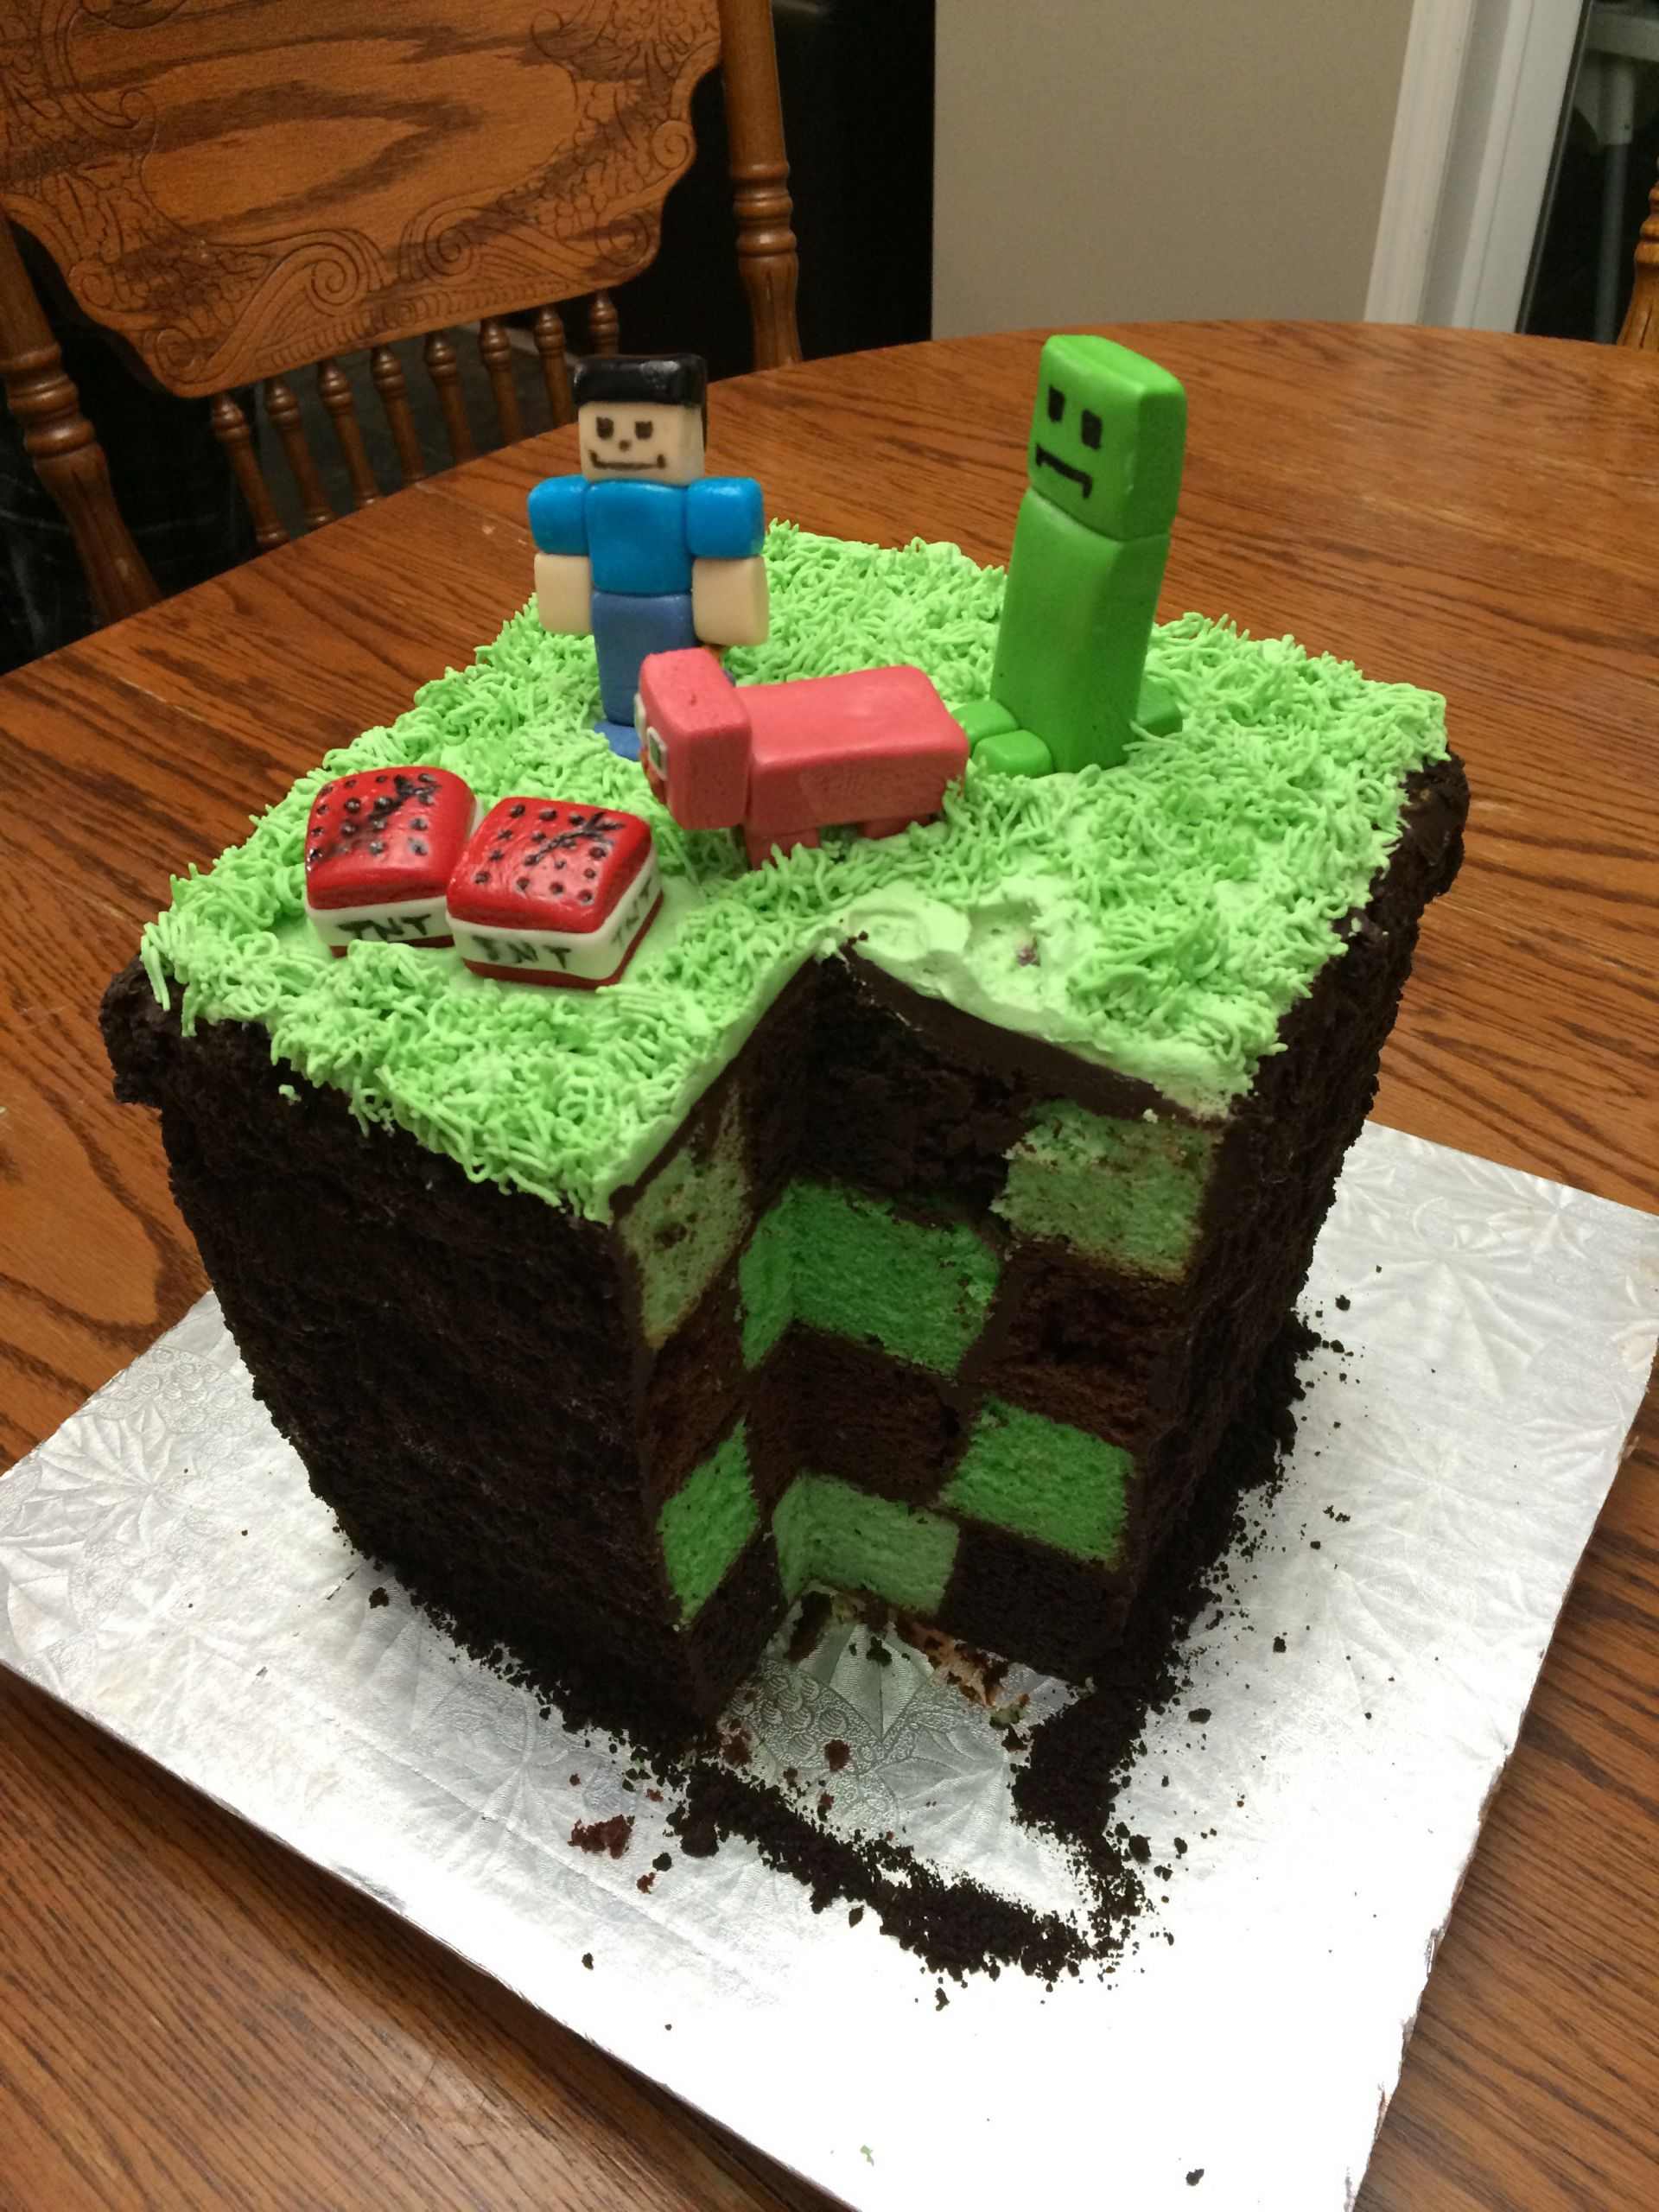 How To Make A Minecraft Birthday Cake  My mom made a pretty cool Minecraft cake for my brother s